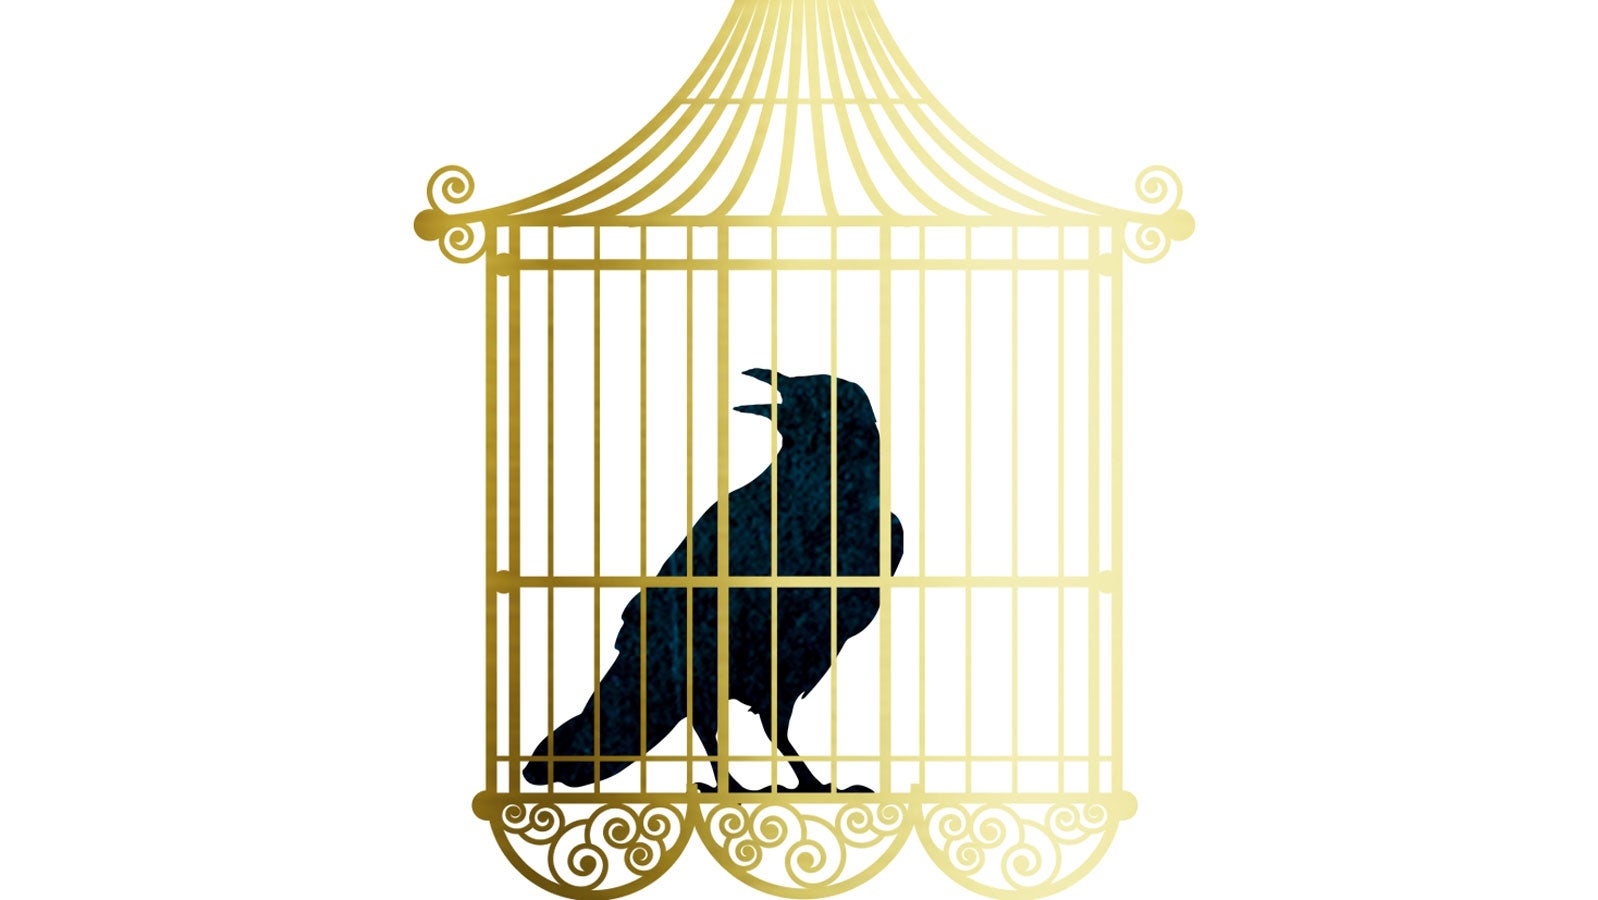 Illustration of a raven in a gold cage